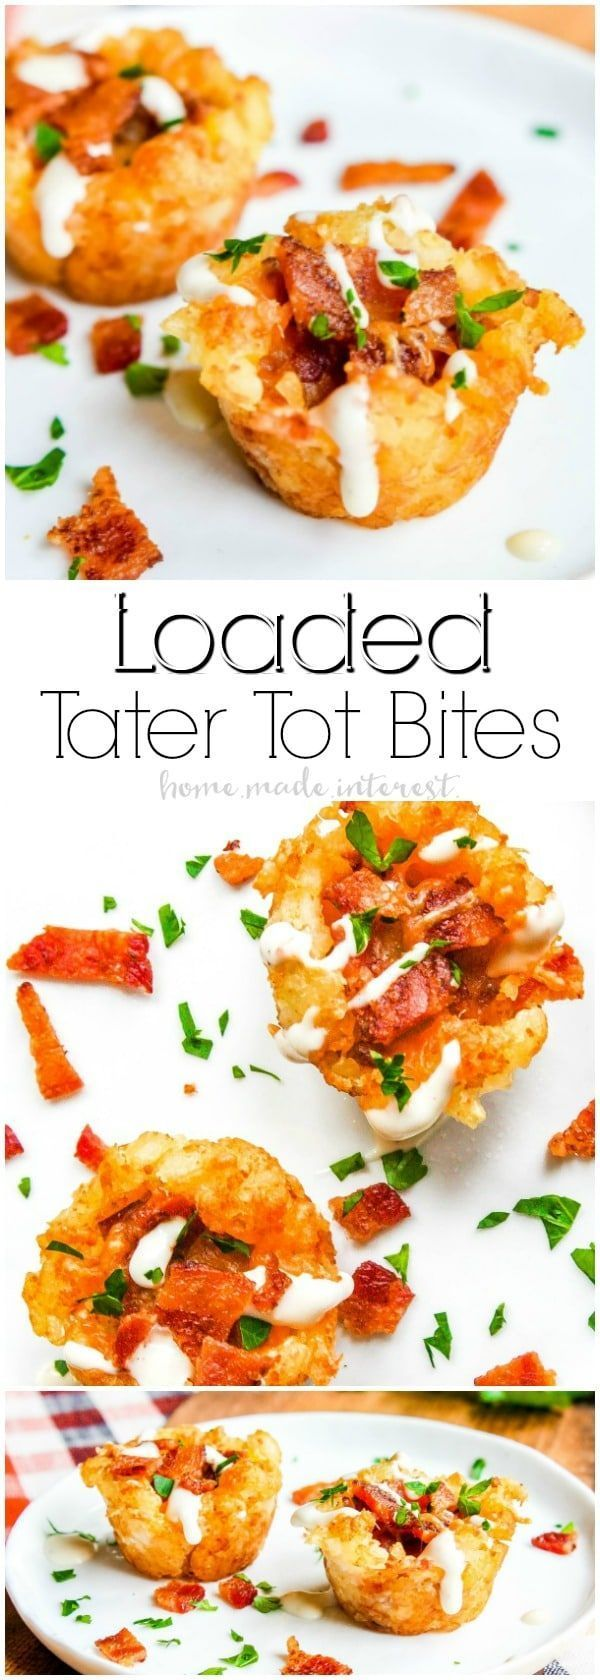 Loaded Tater Tot Bites Loaded Tater Tot Bites   This awesome tater tot appetizer recipe is and easy